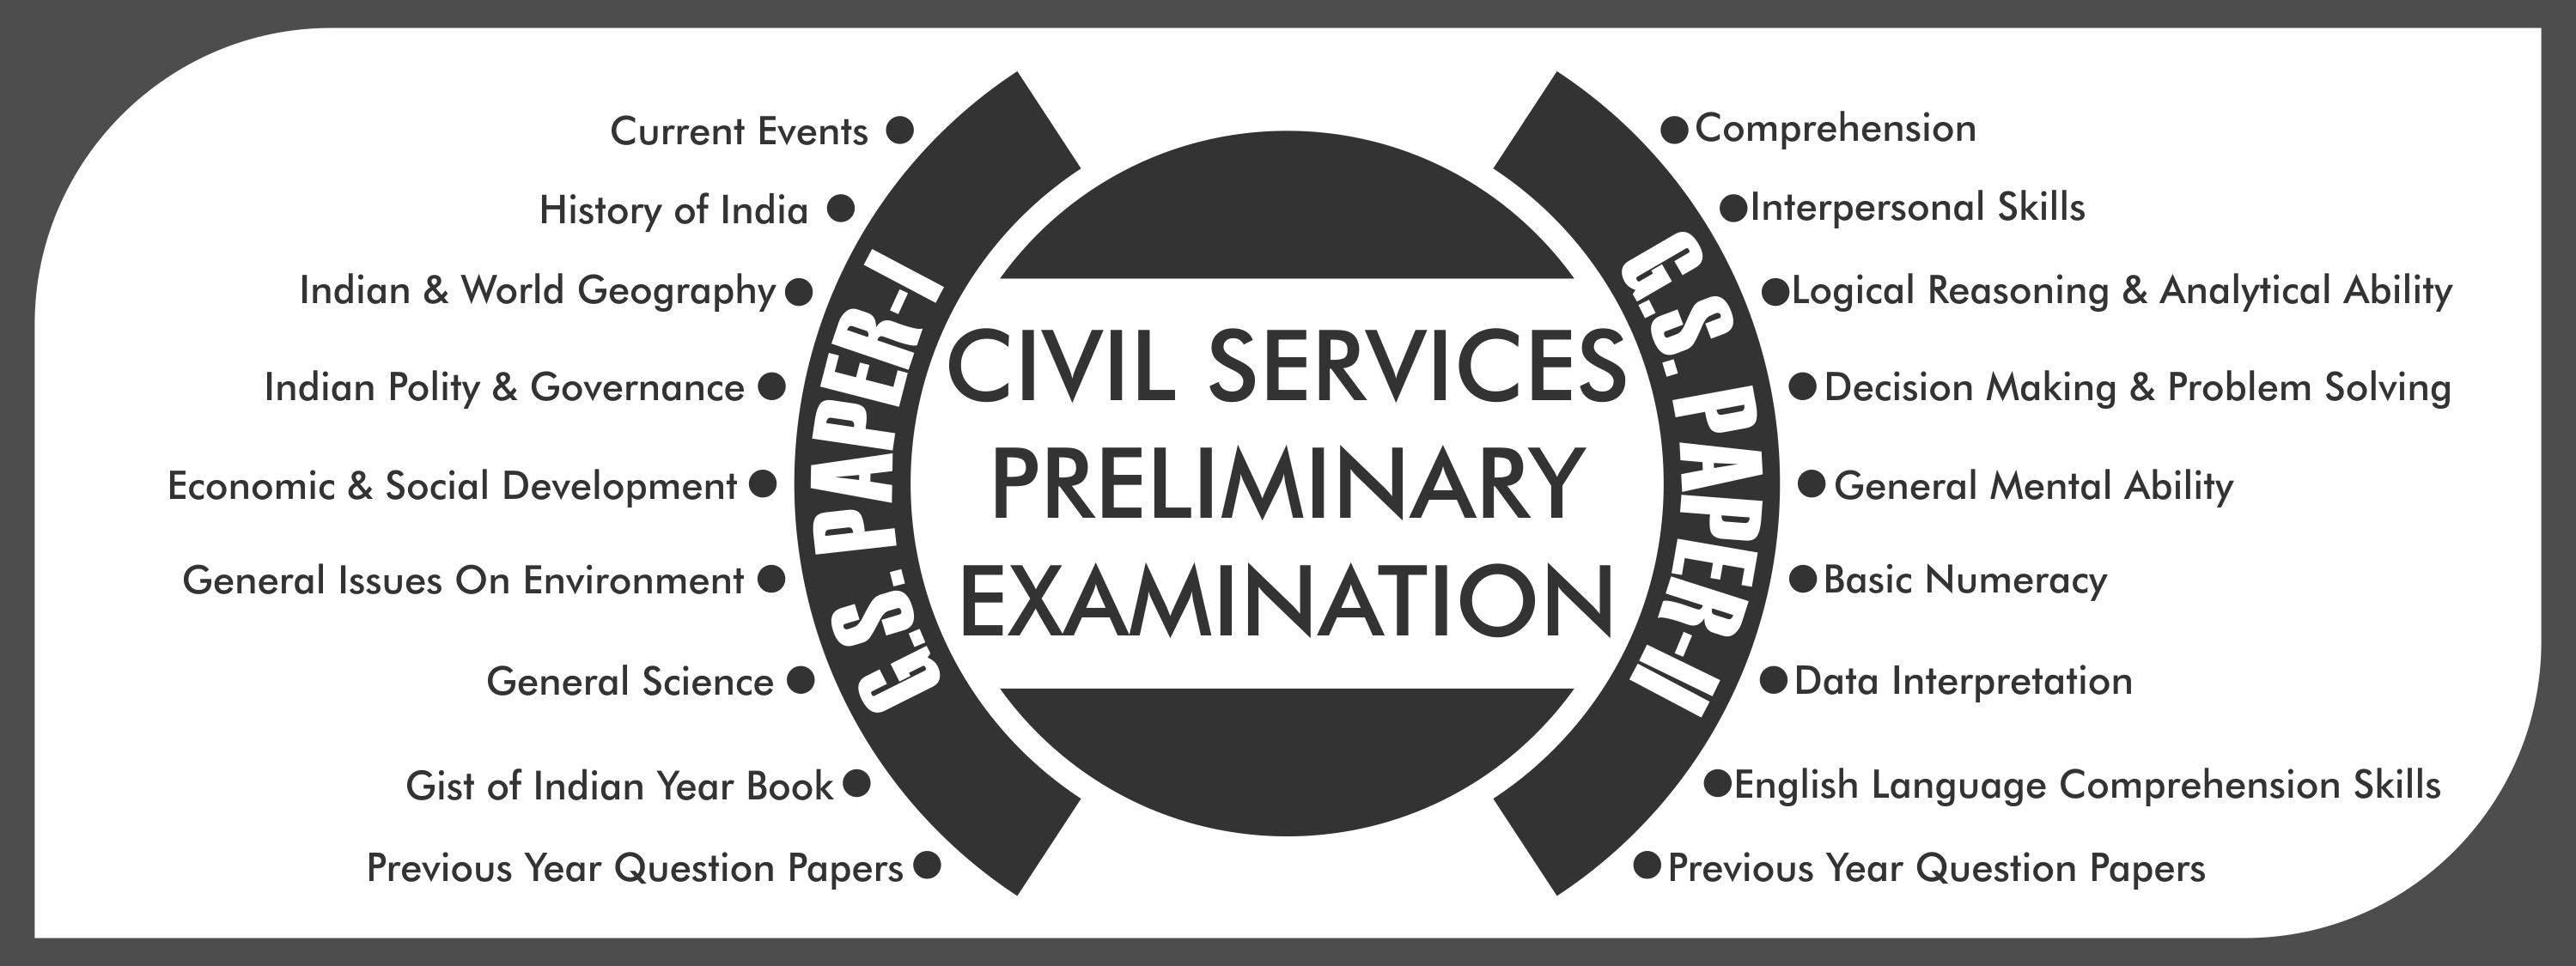 UPSC Syllabus (Prelims) for Civil Services IAS IPS Exam